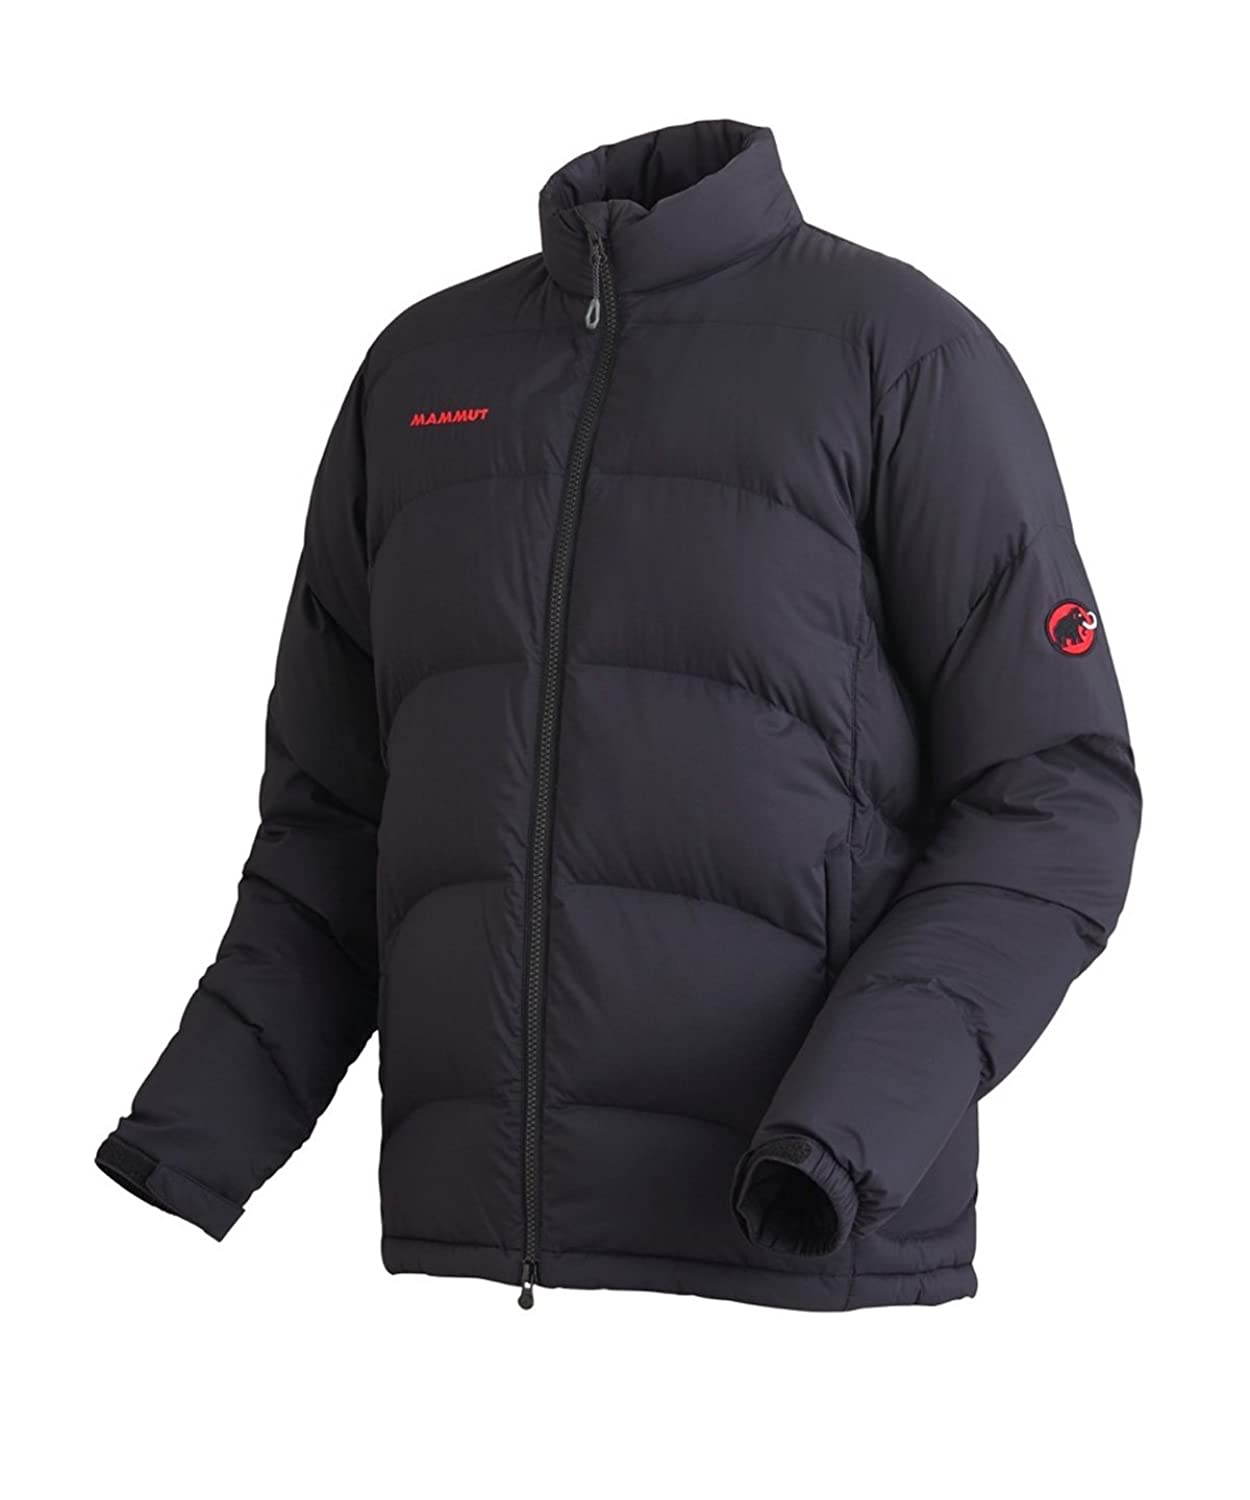 XERON DOWN JACKET